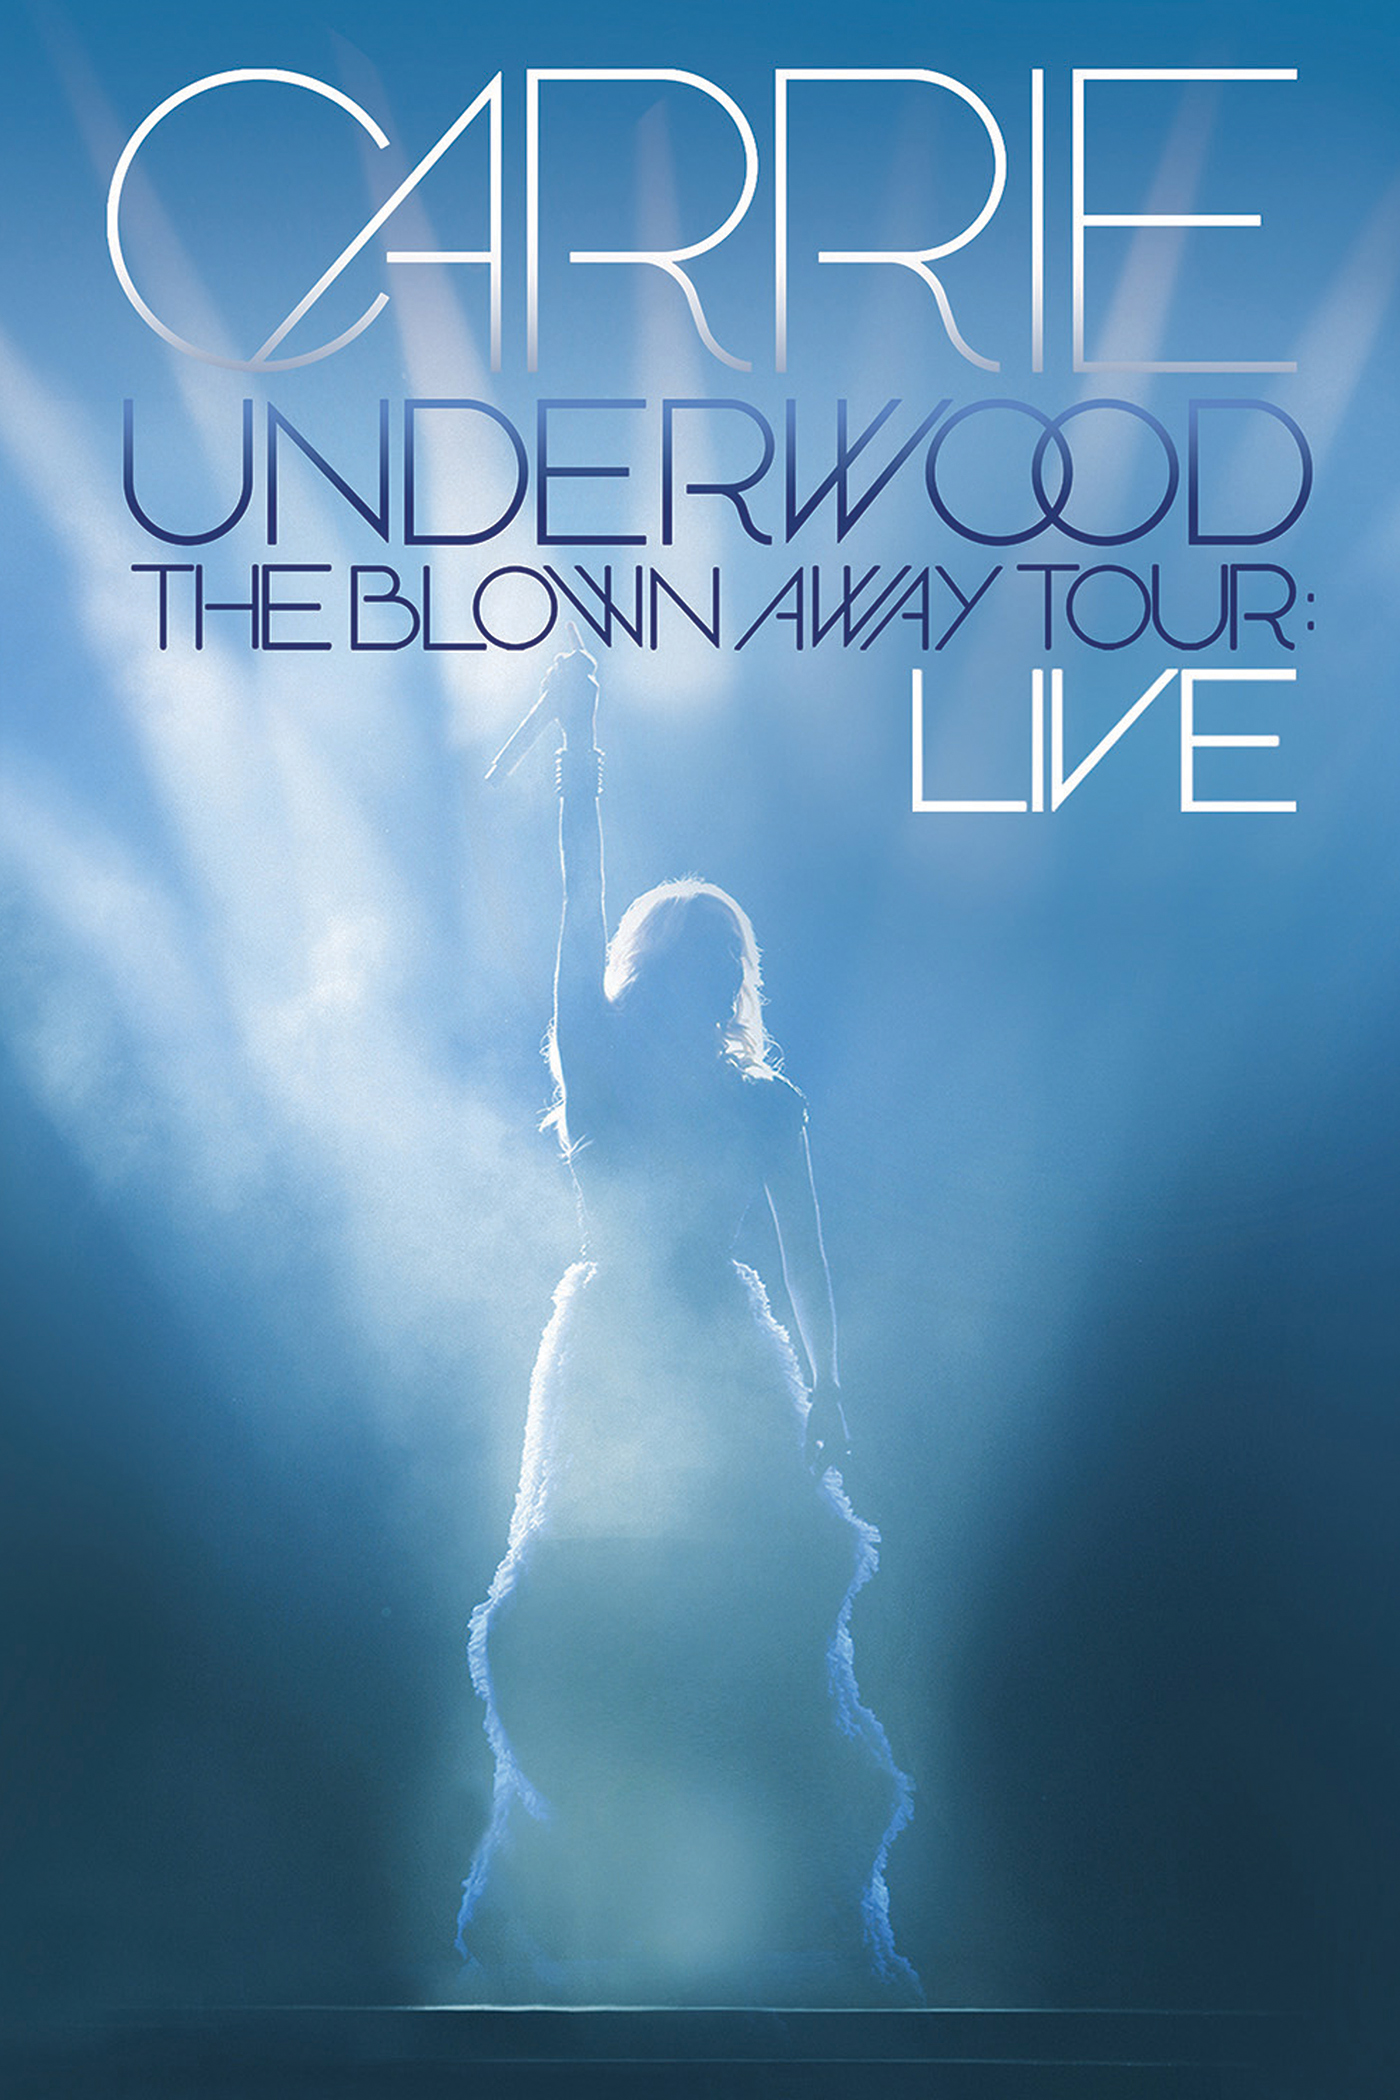 Carrie Underwood The Blown Away Tour Live